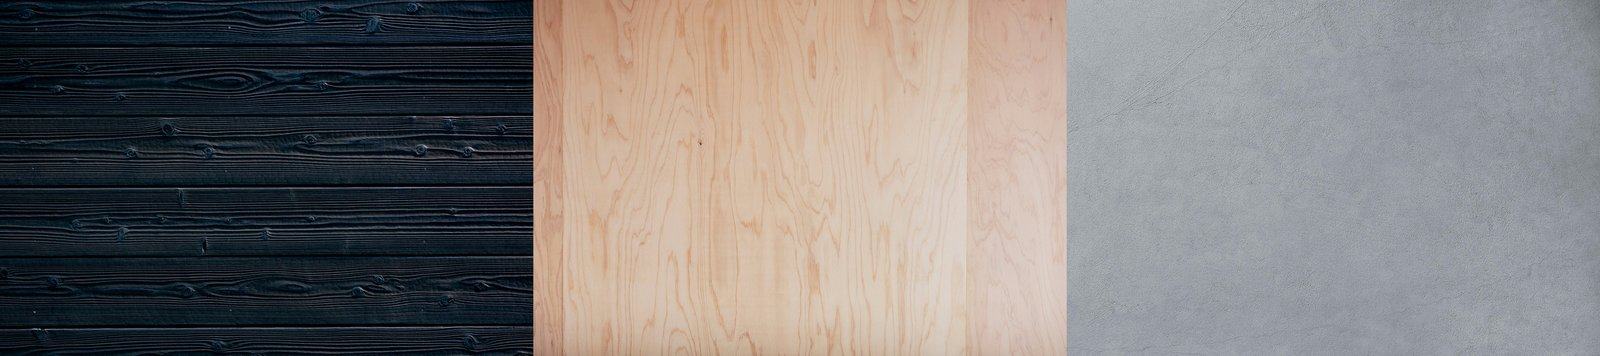 Burnt cedar, Japanese cypress plywood, and mortar create a trio of contrasting yet simple surface textures that breath a relaxed vibe into the Muji Hut.  Photo 5 of 7 in The Muji Hut is a Masterful Take on Minimalism